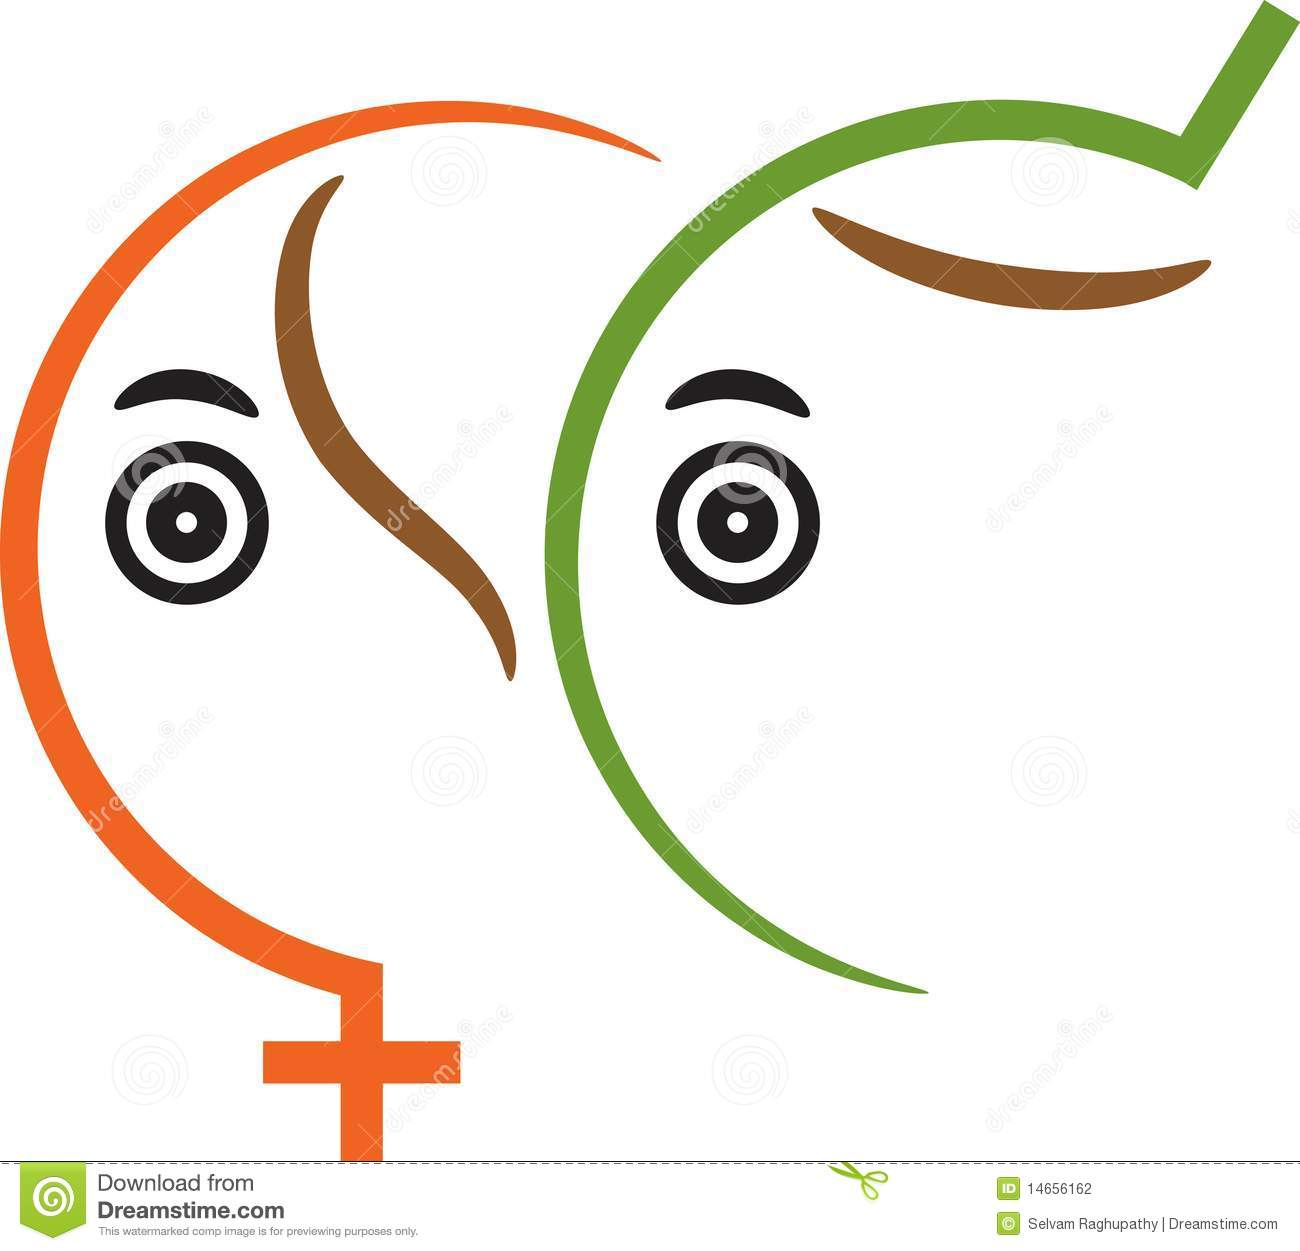 flirting signs of married women images pictures images clip art